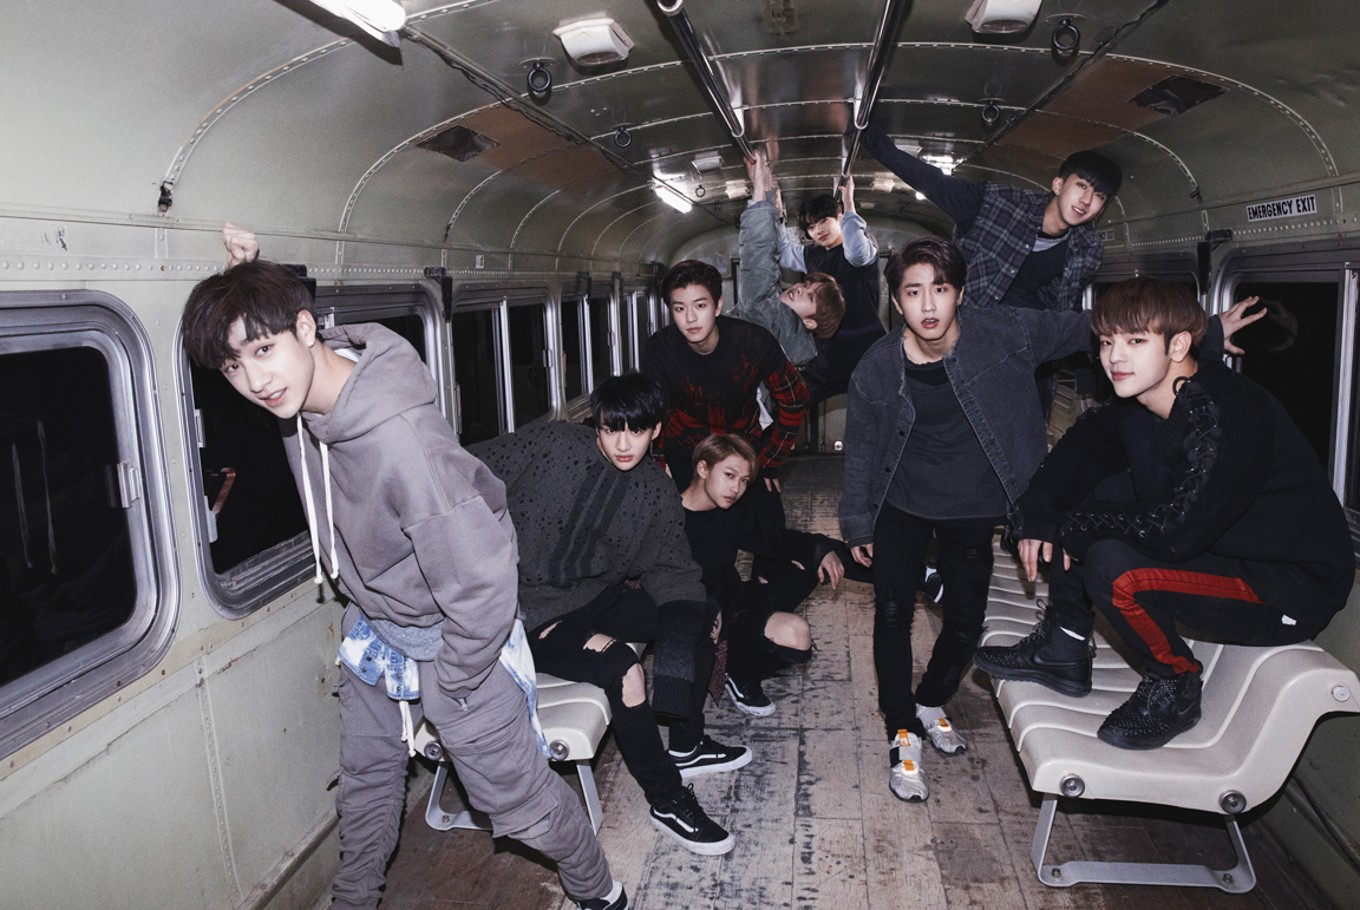 K-pop boyband Stray Kids to perform in Indonesia